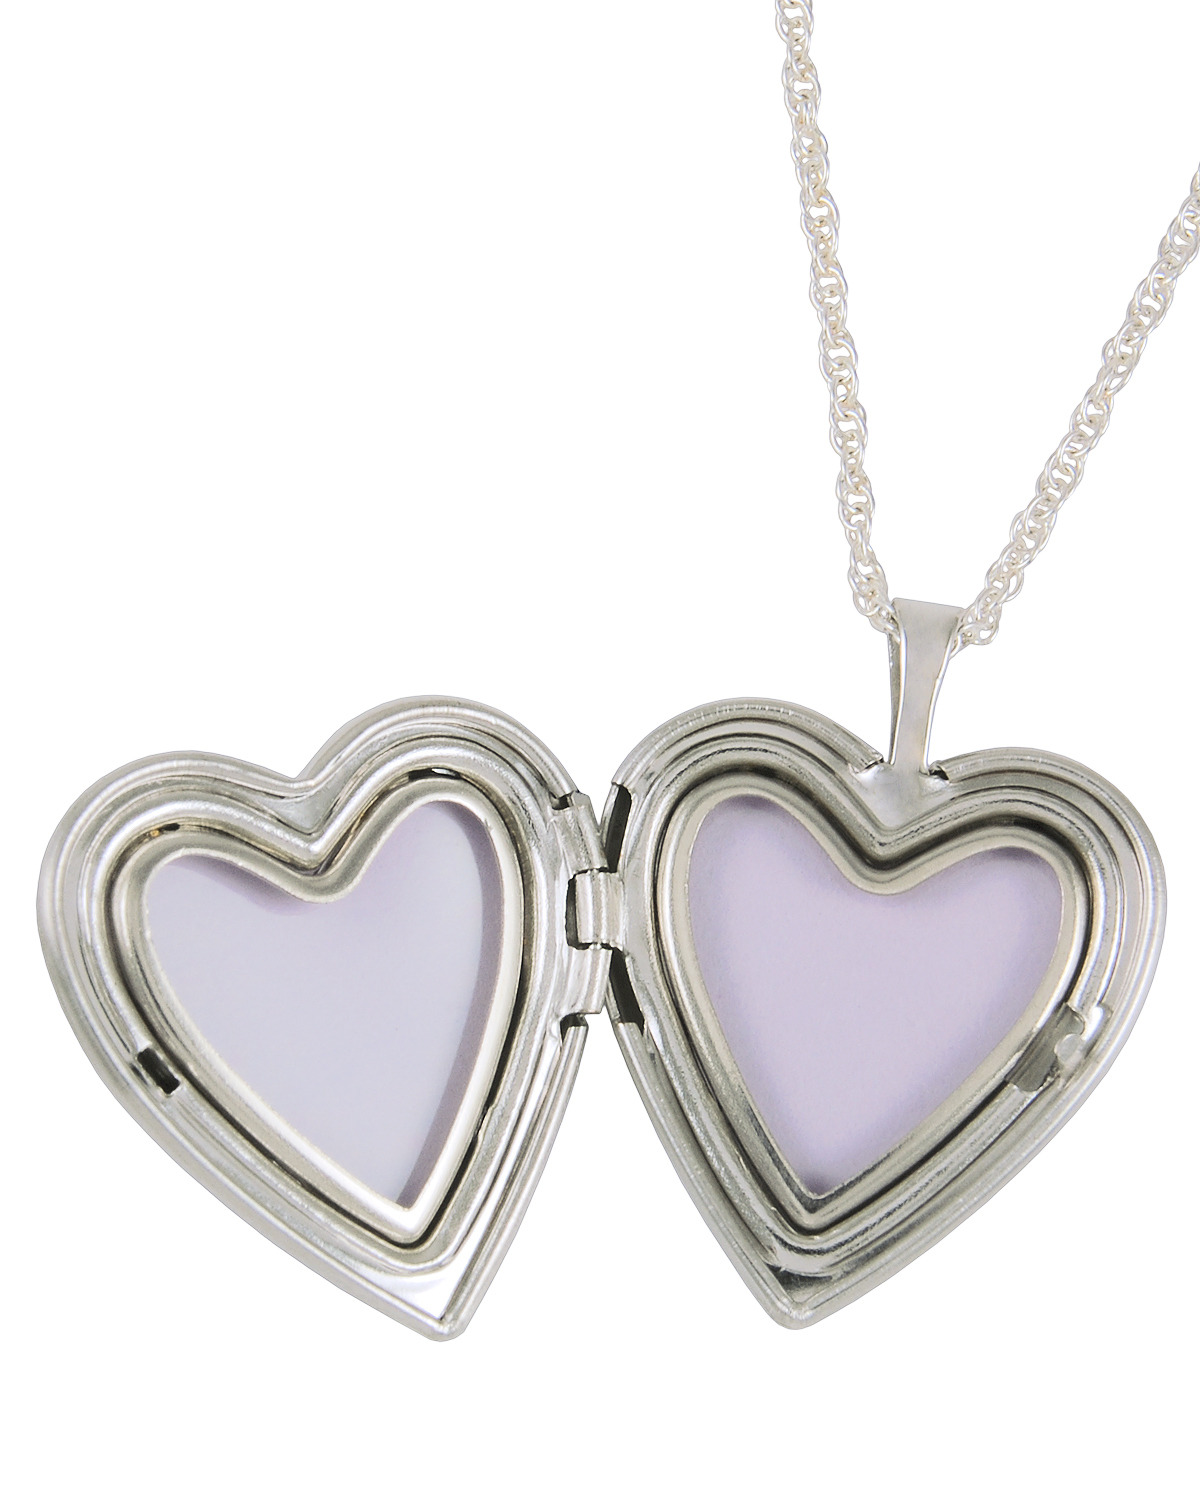 locket sterling london by message open hammered heart necklace jamielondon personalised original lockets inserted jamie with silver product photograph